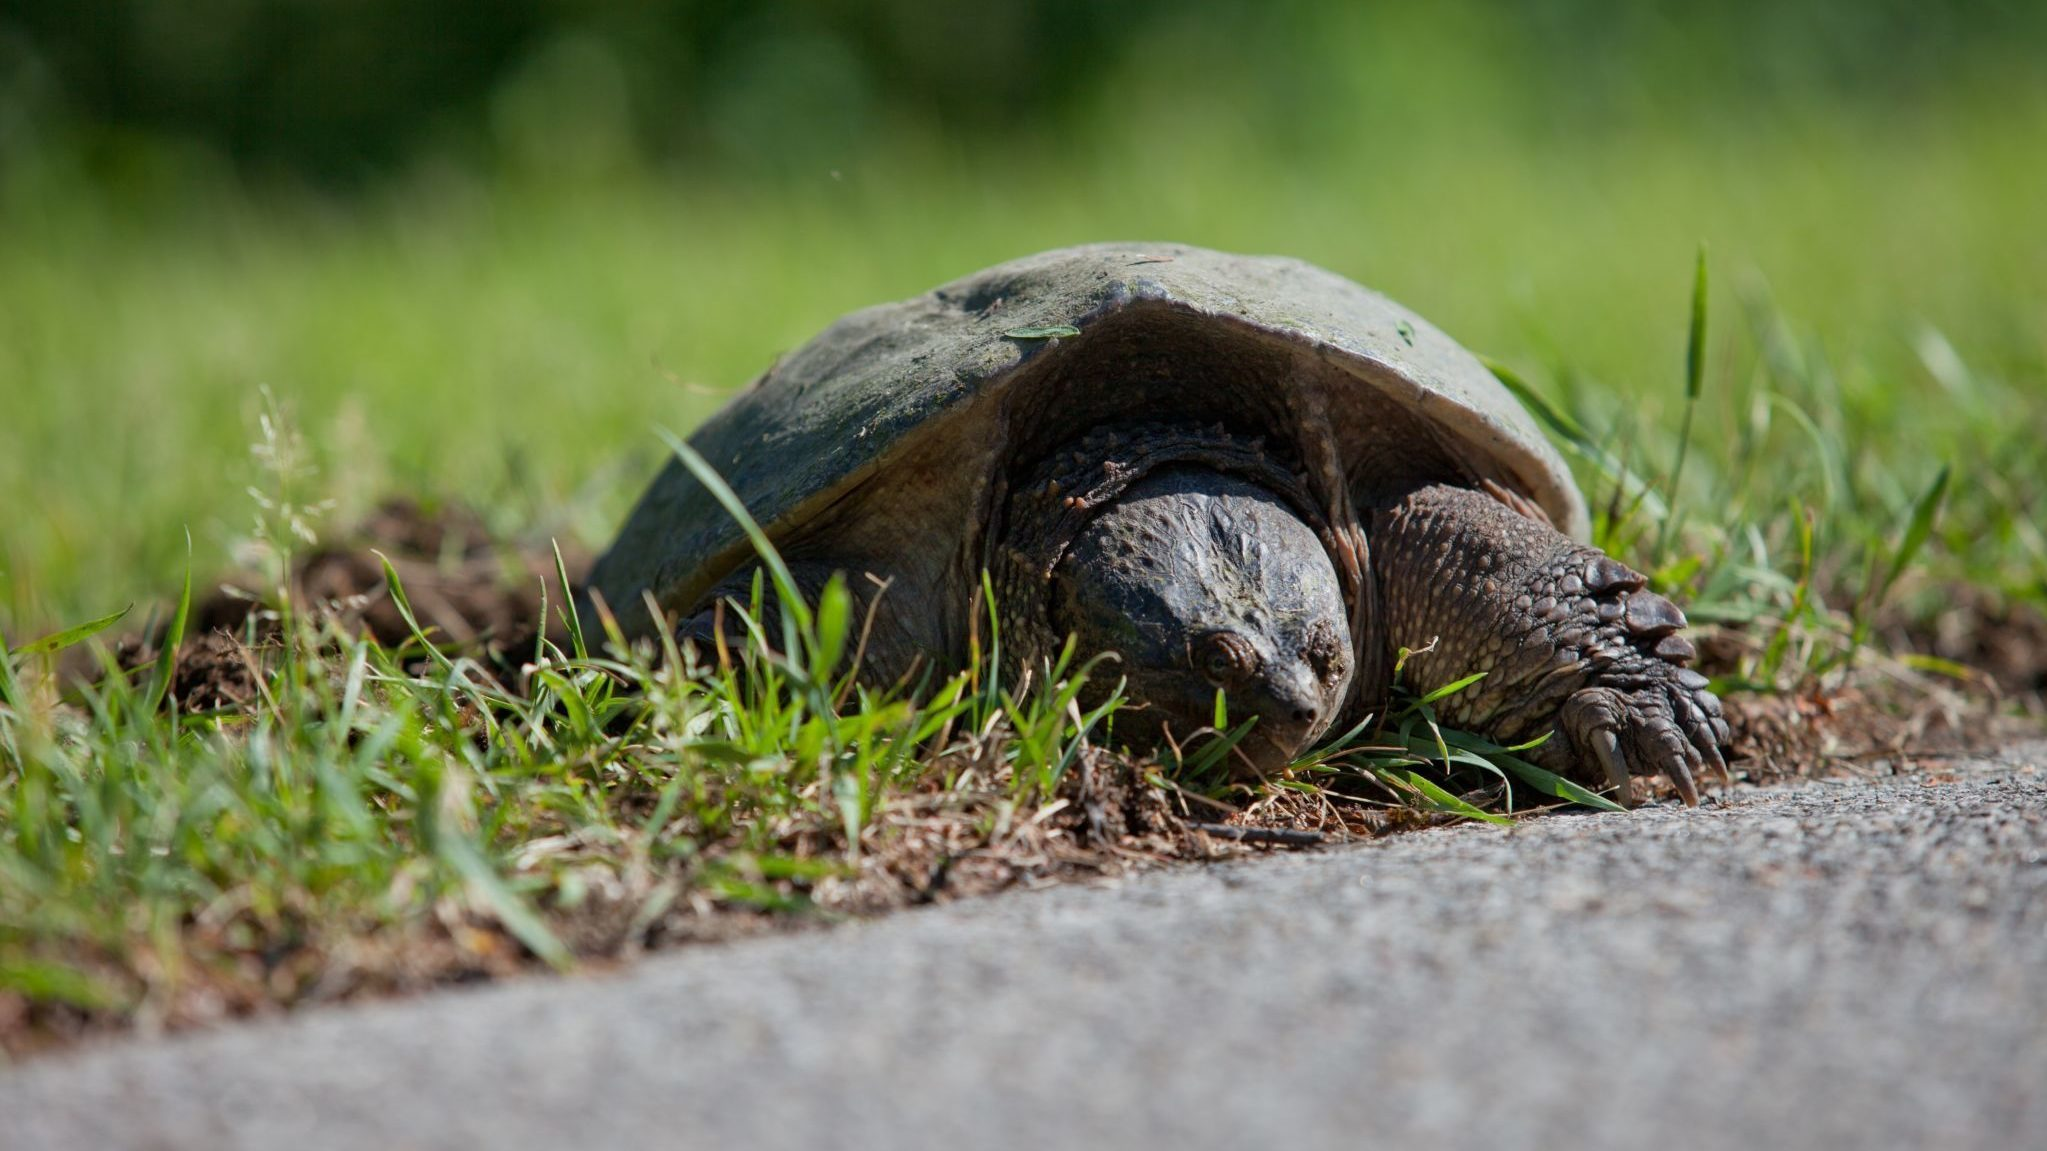 Turtle about to cross a road in Gatineau Park